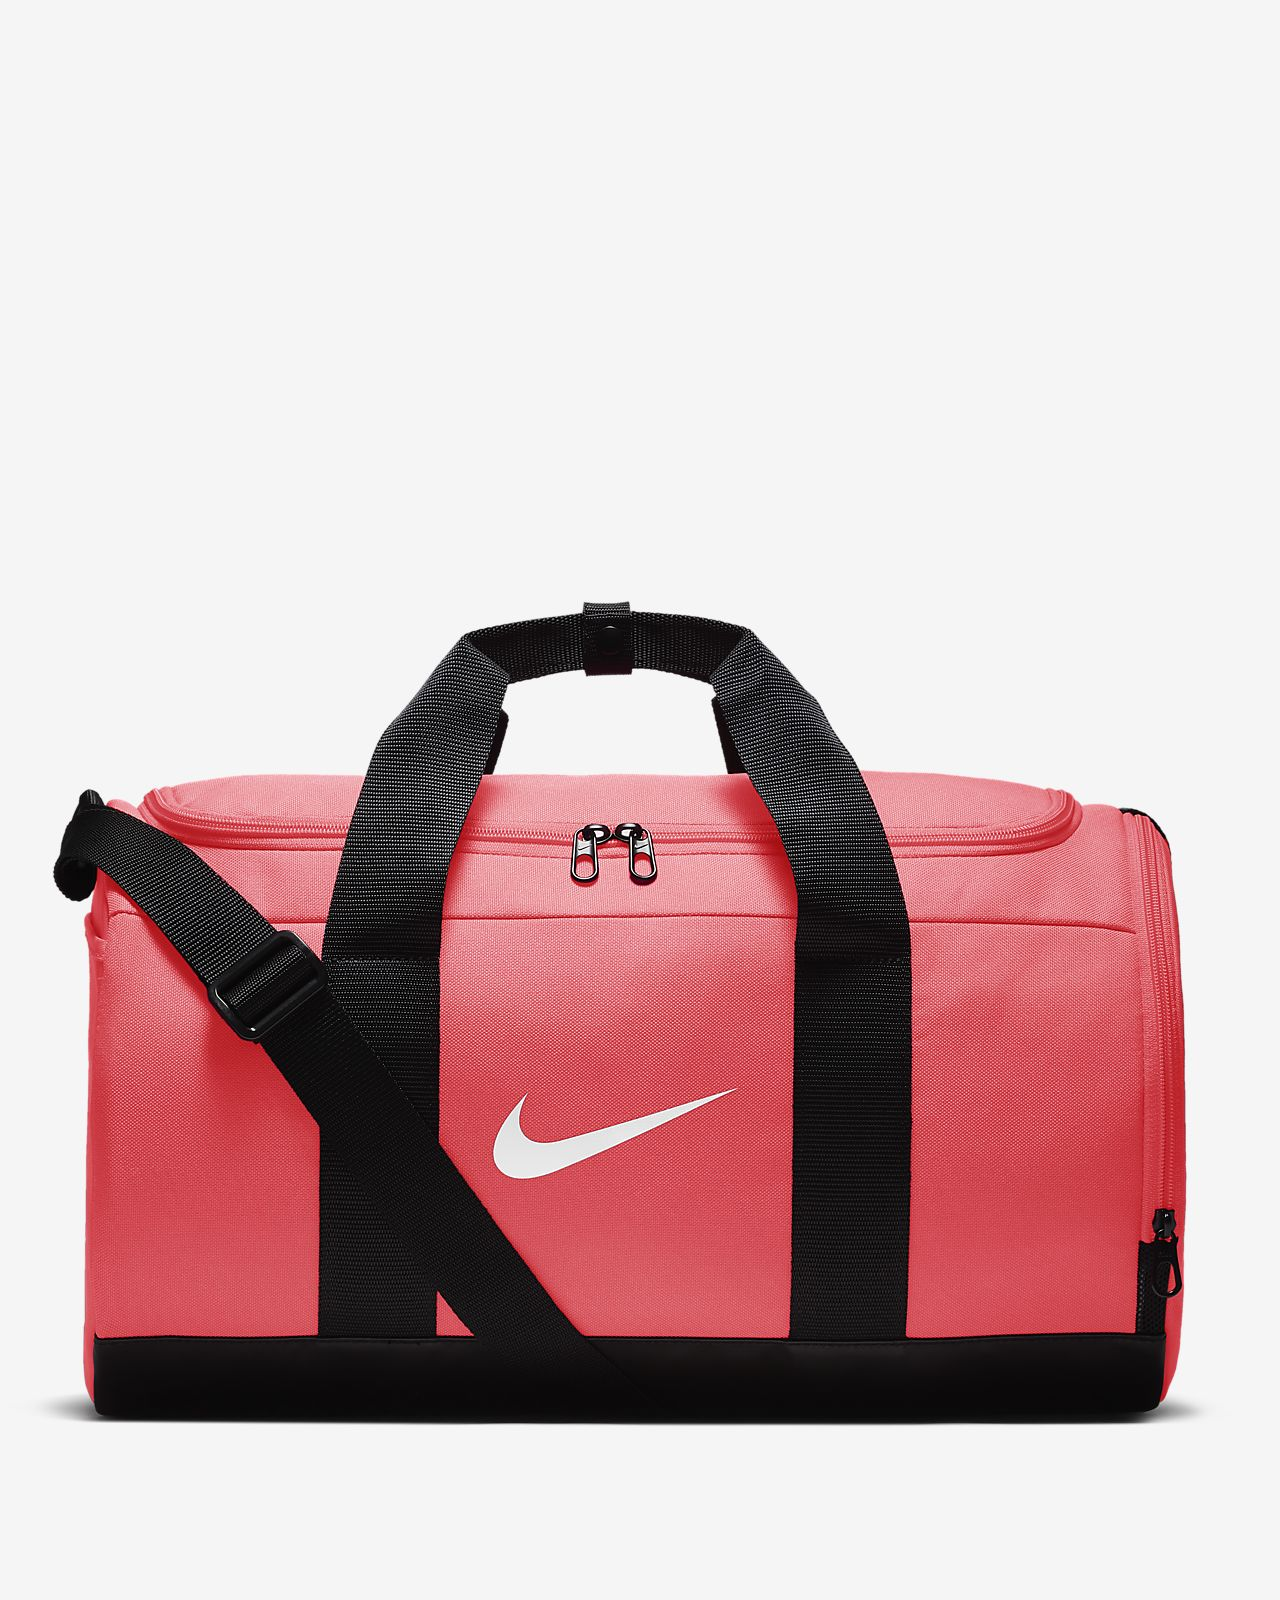 3b6b6a16ea2b Nike Team Women s Training Duffel Bag. Nike.com GB